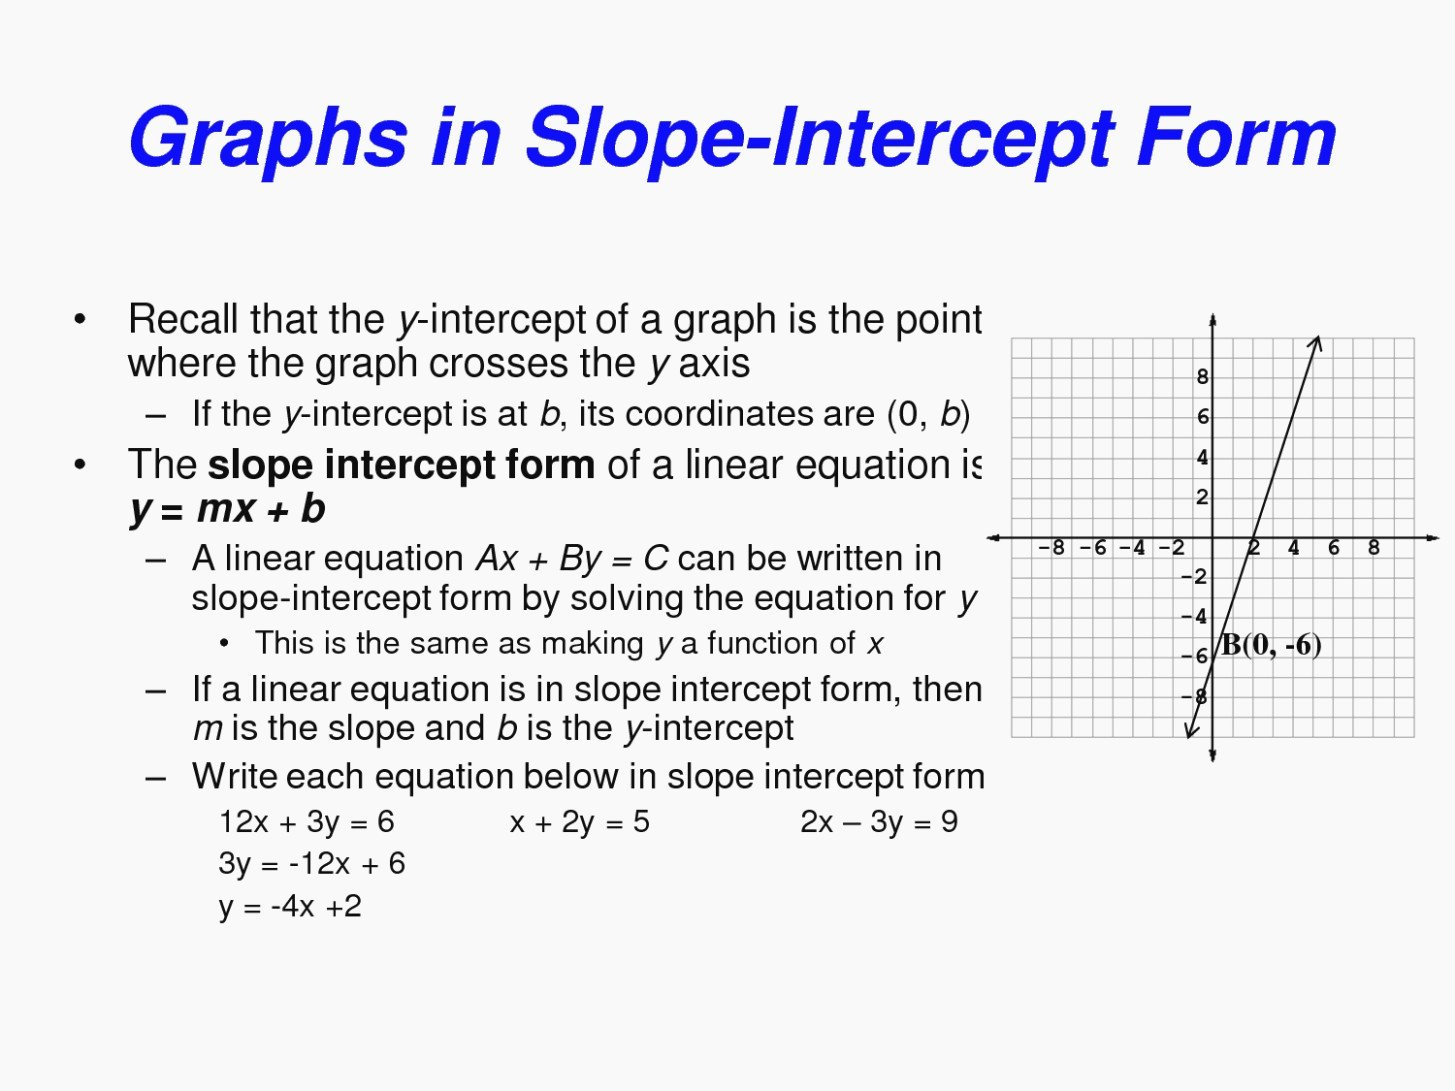 Graphing Linear Equations Practice Worksheet Fresh 14 Quick Tips for How to